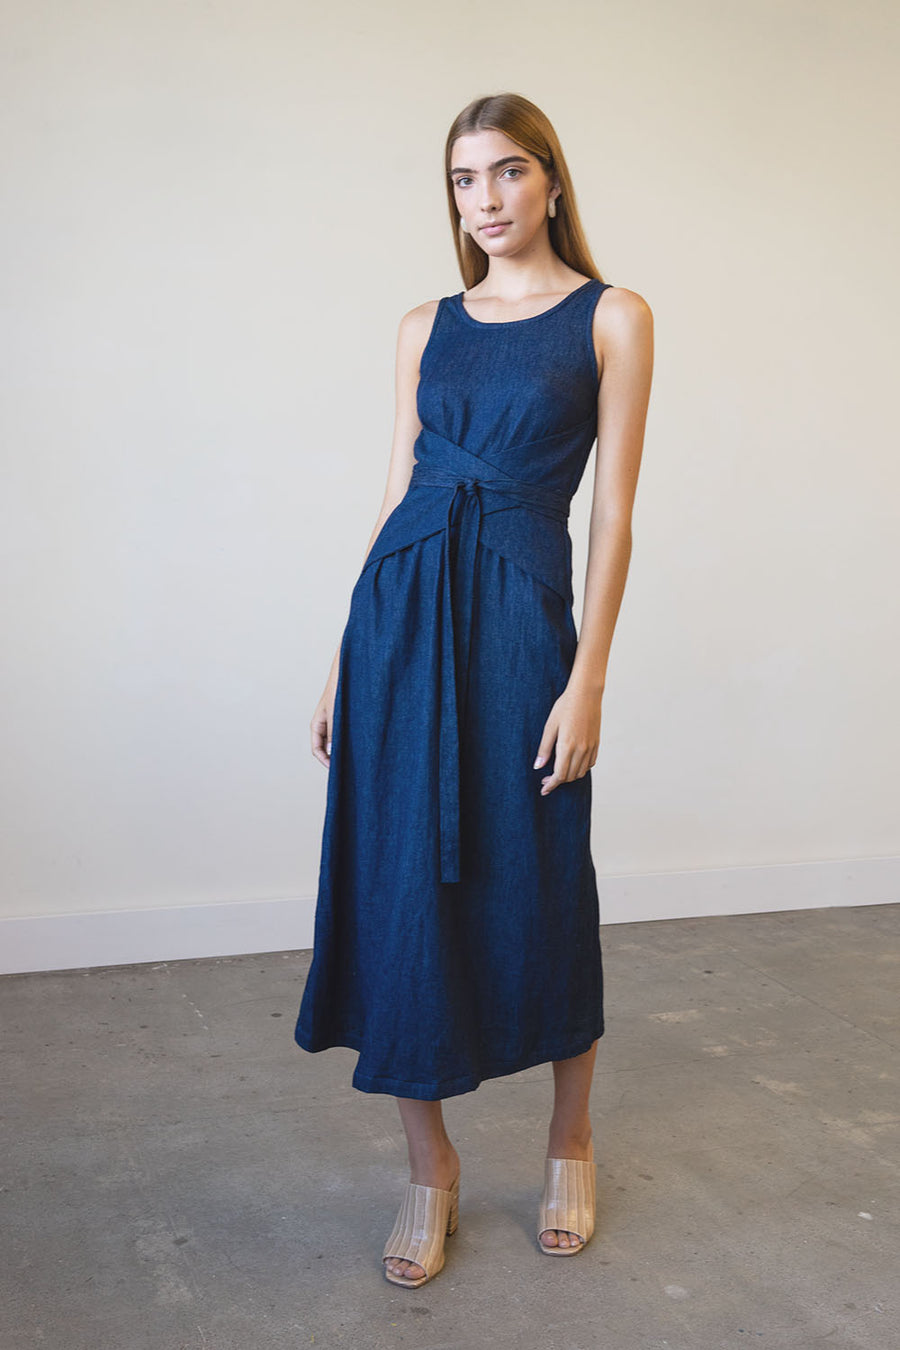 Eclipse Dress in Hemp Denim